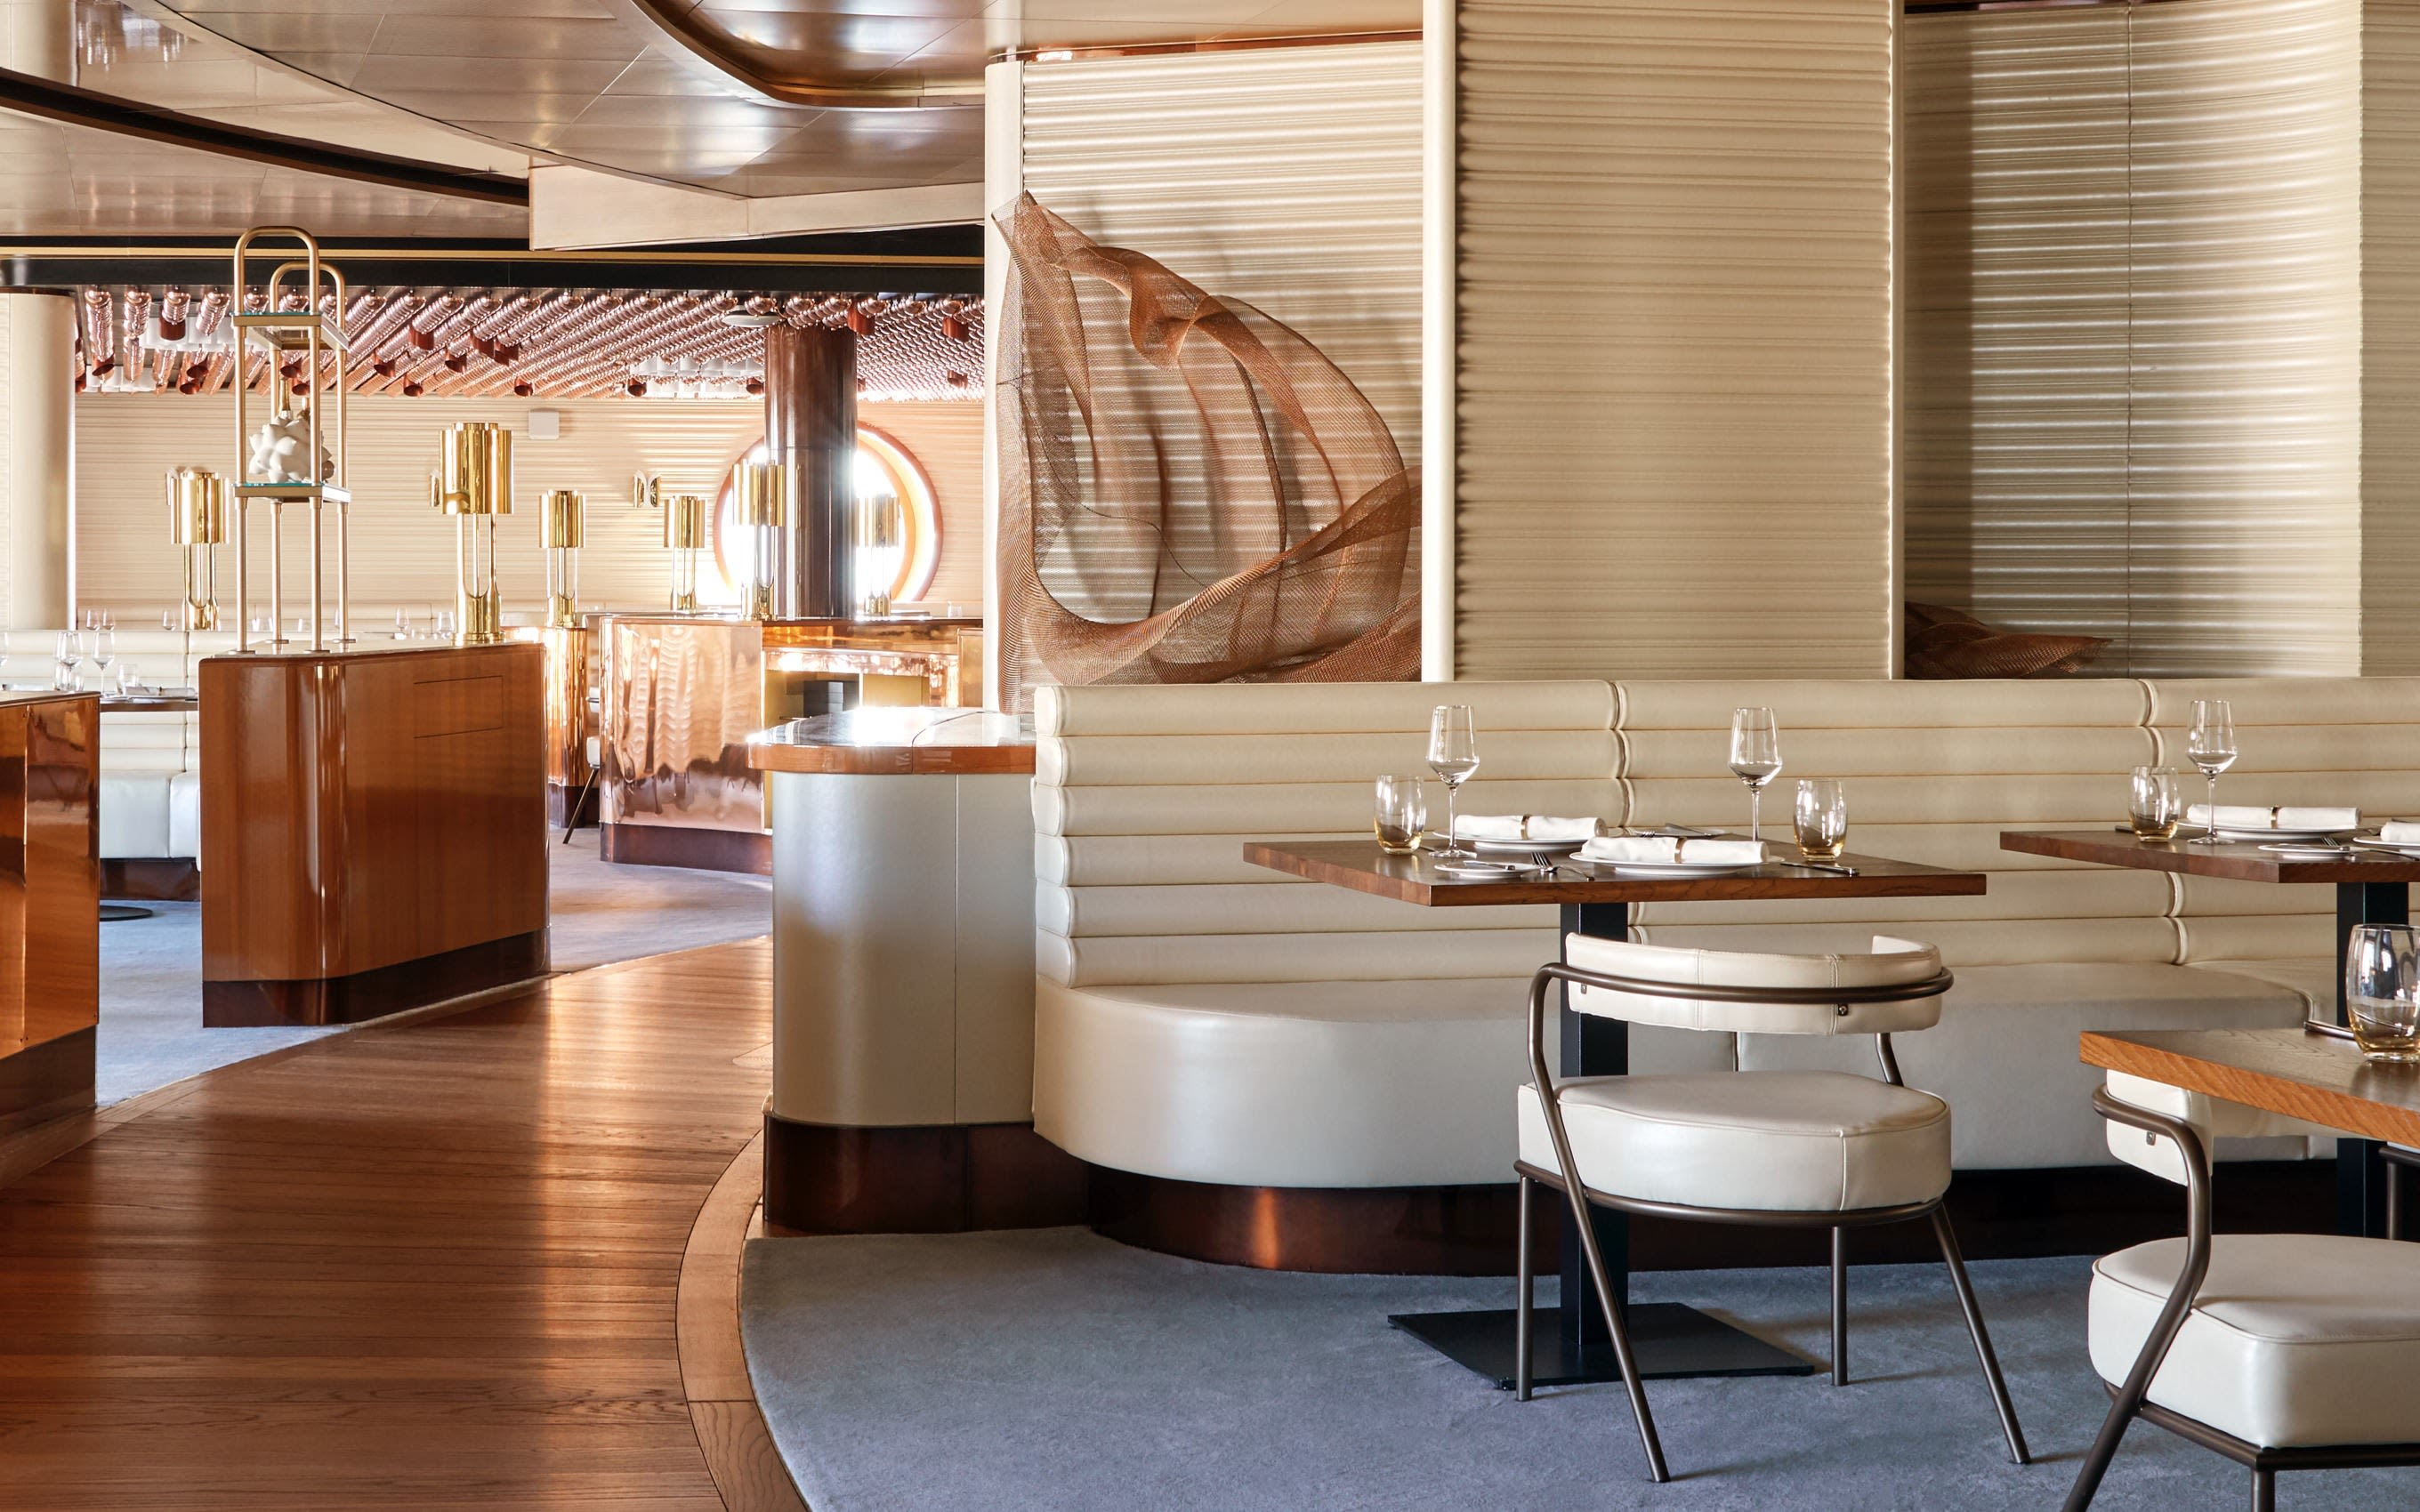 The Wake restaurant onboard Virgin Voyages' Scarlet Lady